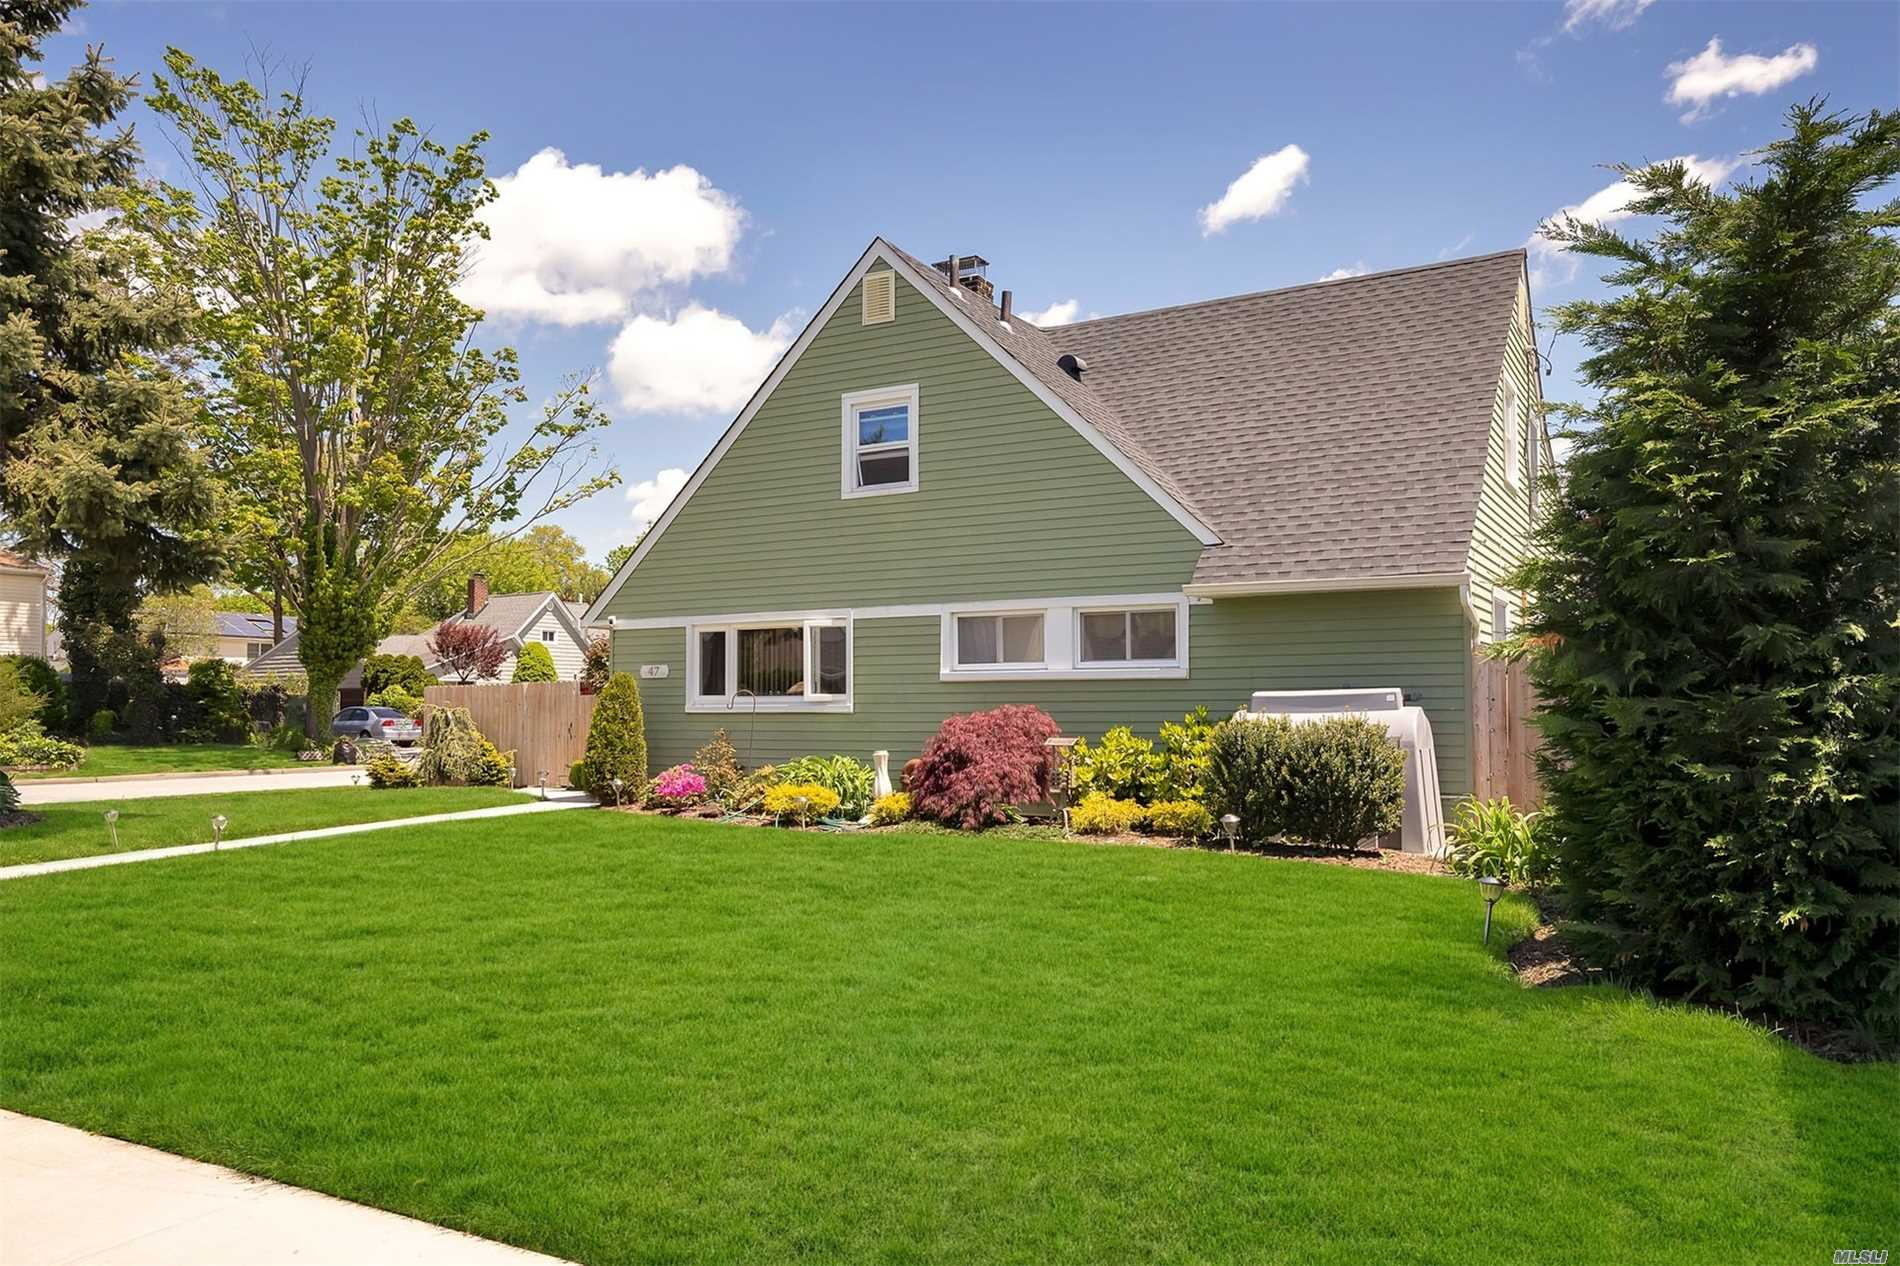 Expanded Levit Cape on Lovely Landscaped Corner Lot. Home is expanded across the rear with beautiful Open Layout. Extra Room downstairs can be a den or 5th bedroom. Fenced in Entertainers Backyard. In-ground Sprinklers. Architectural Roof 3 years old. Island Trees School District! Walk to Elementary. Big Family? YES! Low Taxes? YES!! Move right in turnkey day one! Mint Condition Many updates. Gated Driveway at rear of property..Dog Run, Gazebo, Custom Double Chair Swing and Shed a gift! Enjoy!